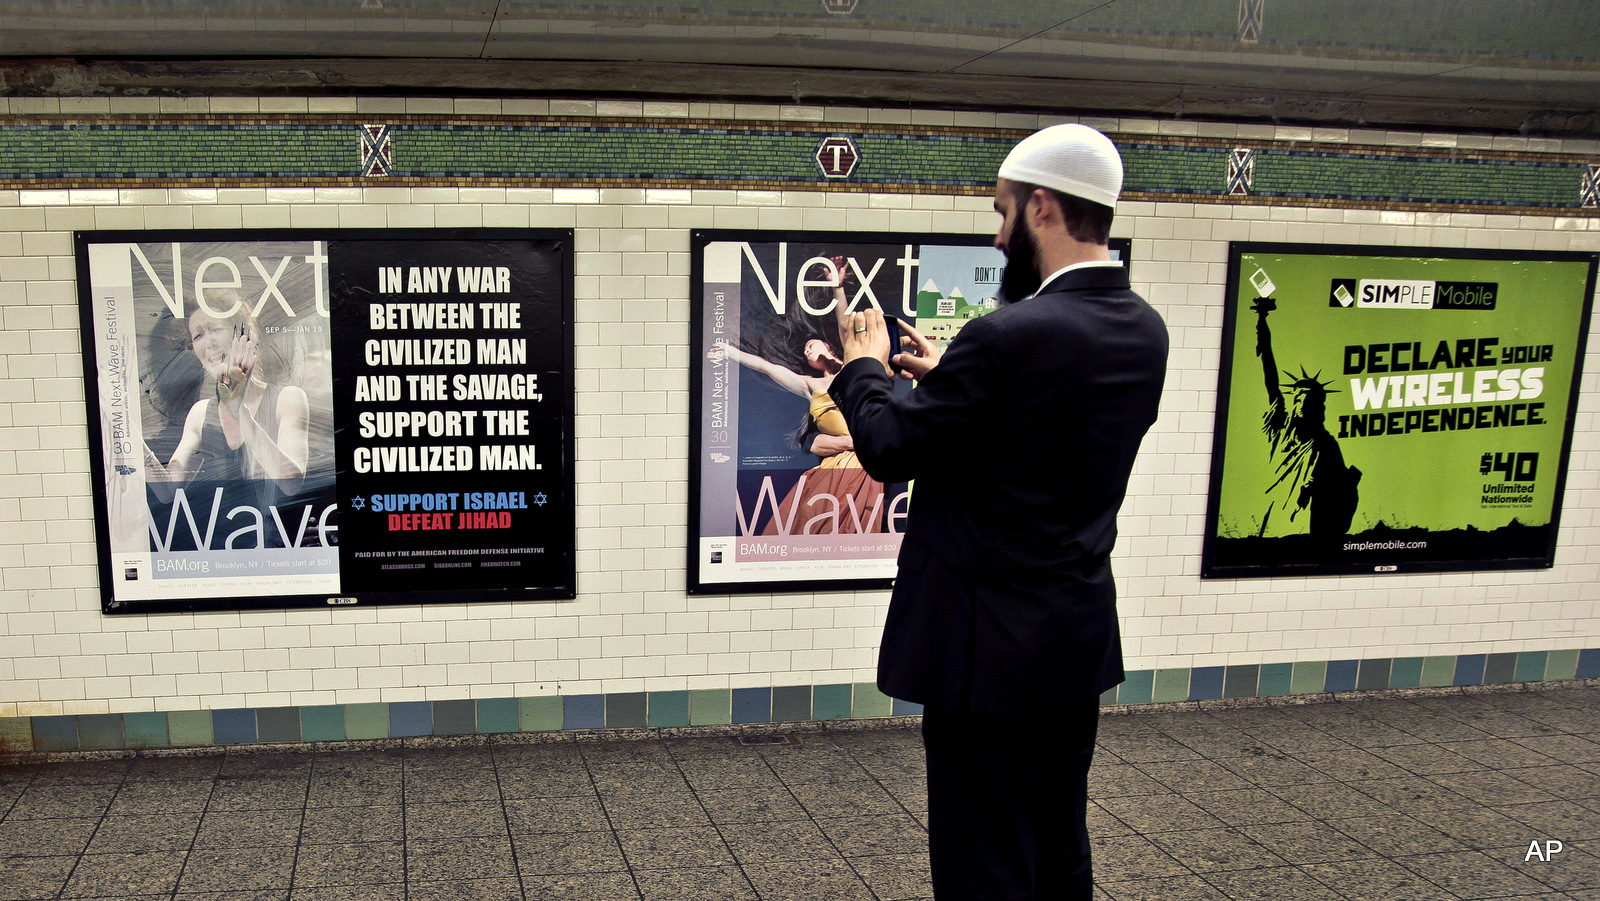 Cyrus McGoldrick, takes a photo with his cell phone of an anti-Muslim poster in New York's Times Square subway station.